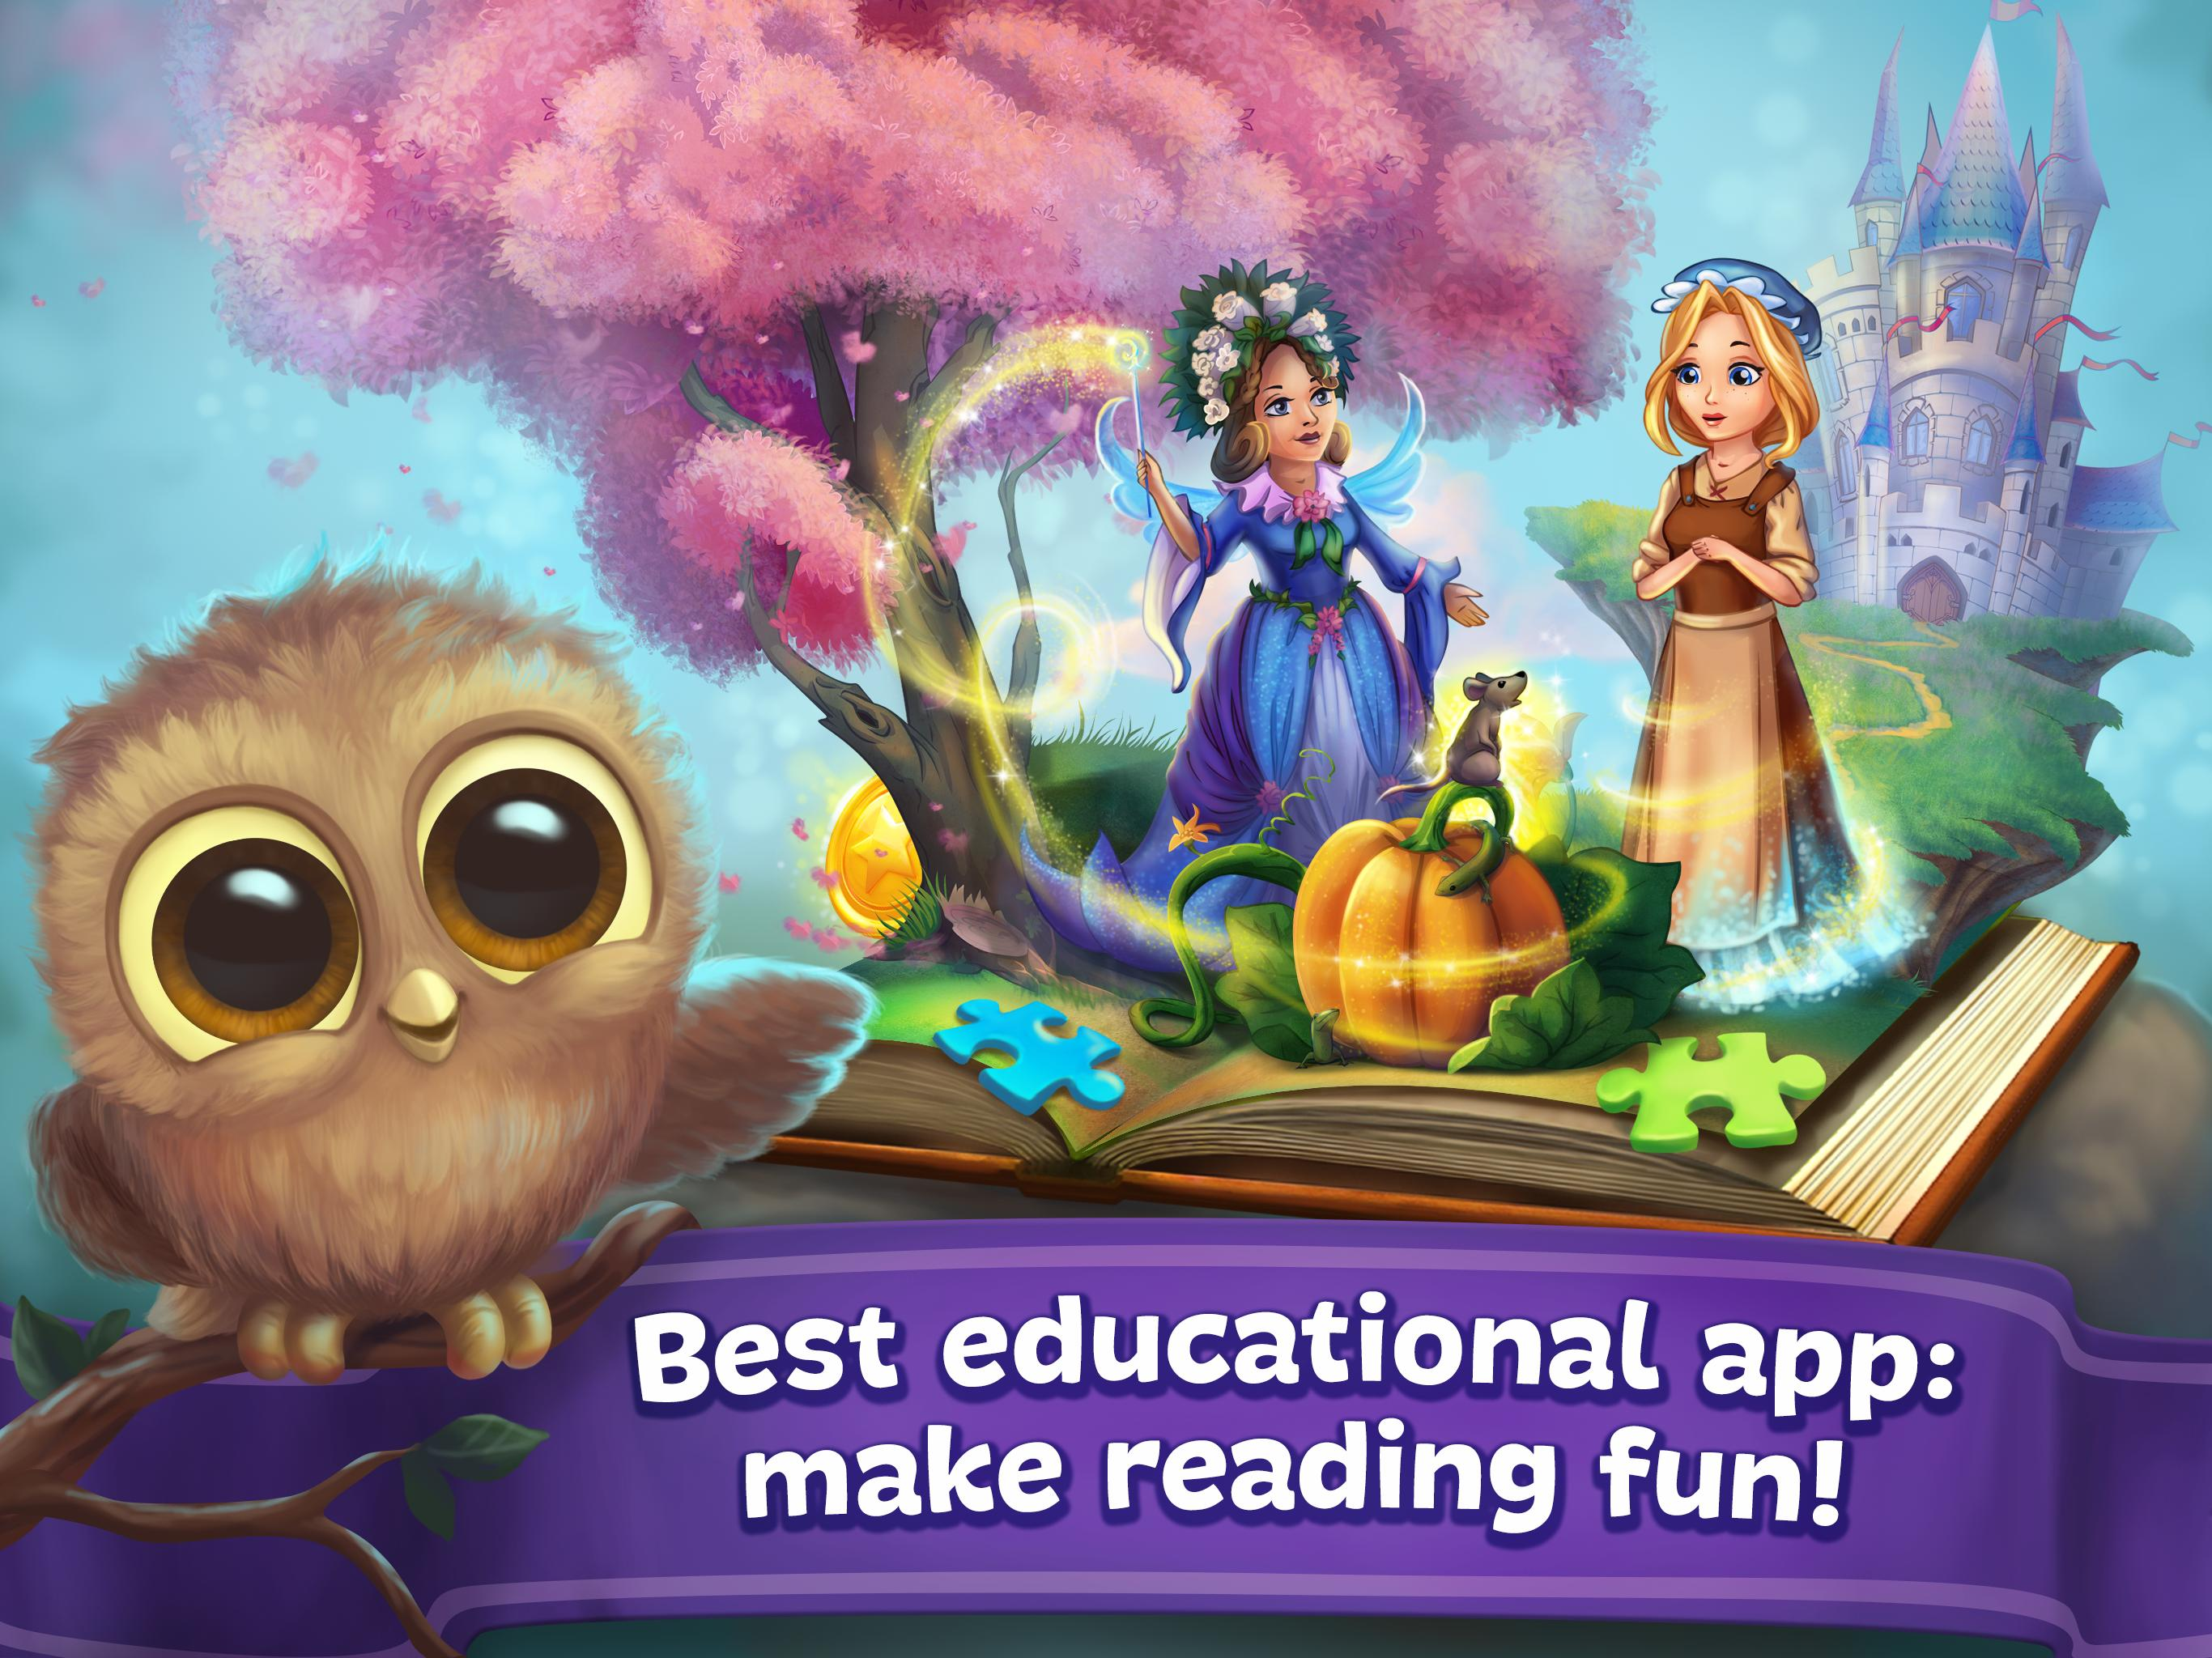 Fairy Tales Children's Books, Stories and Games 2.7.0 Screenshot 6